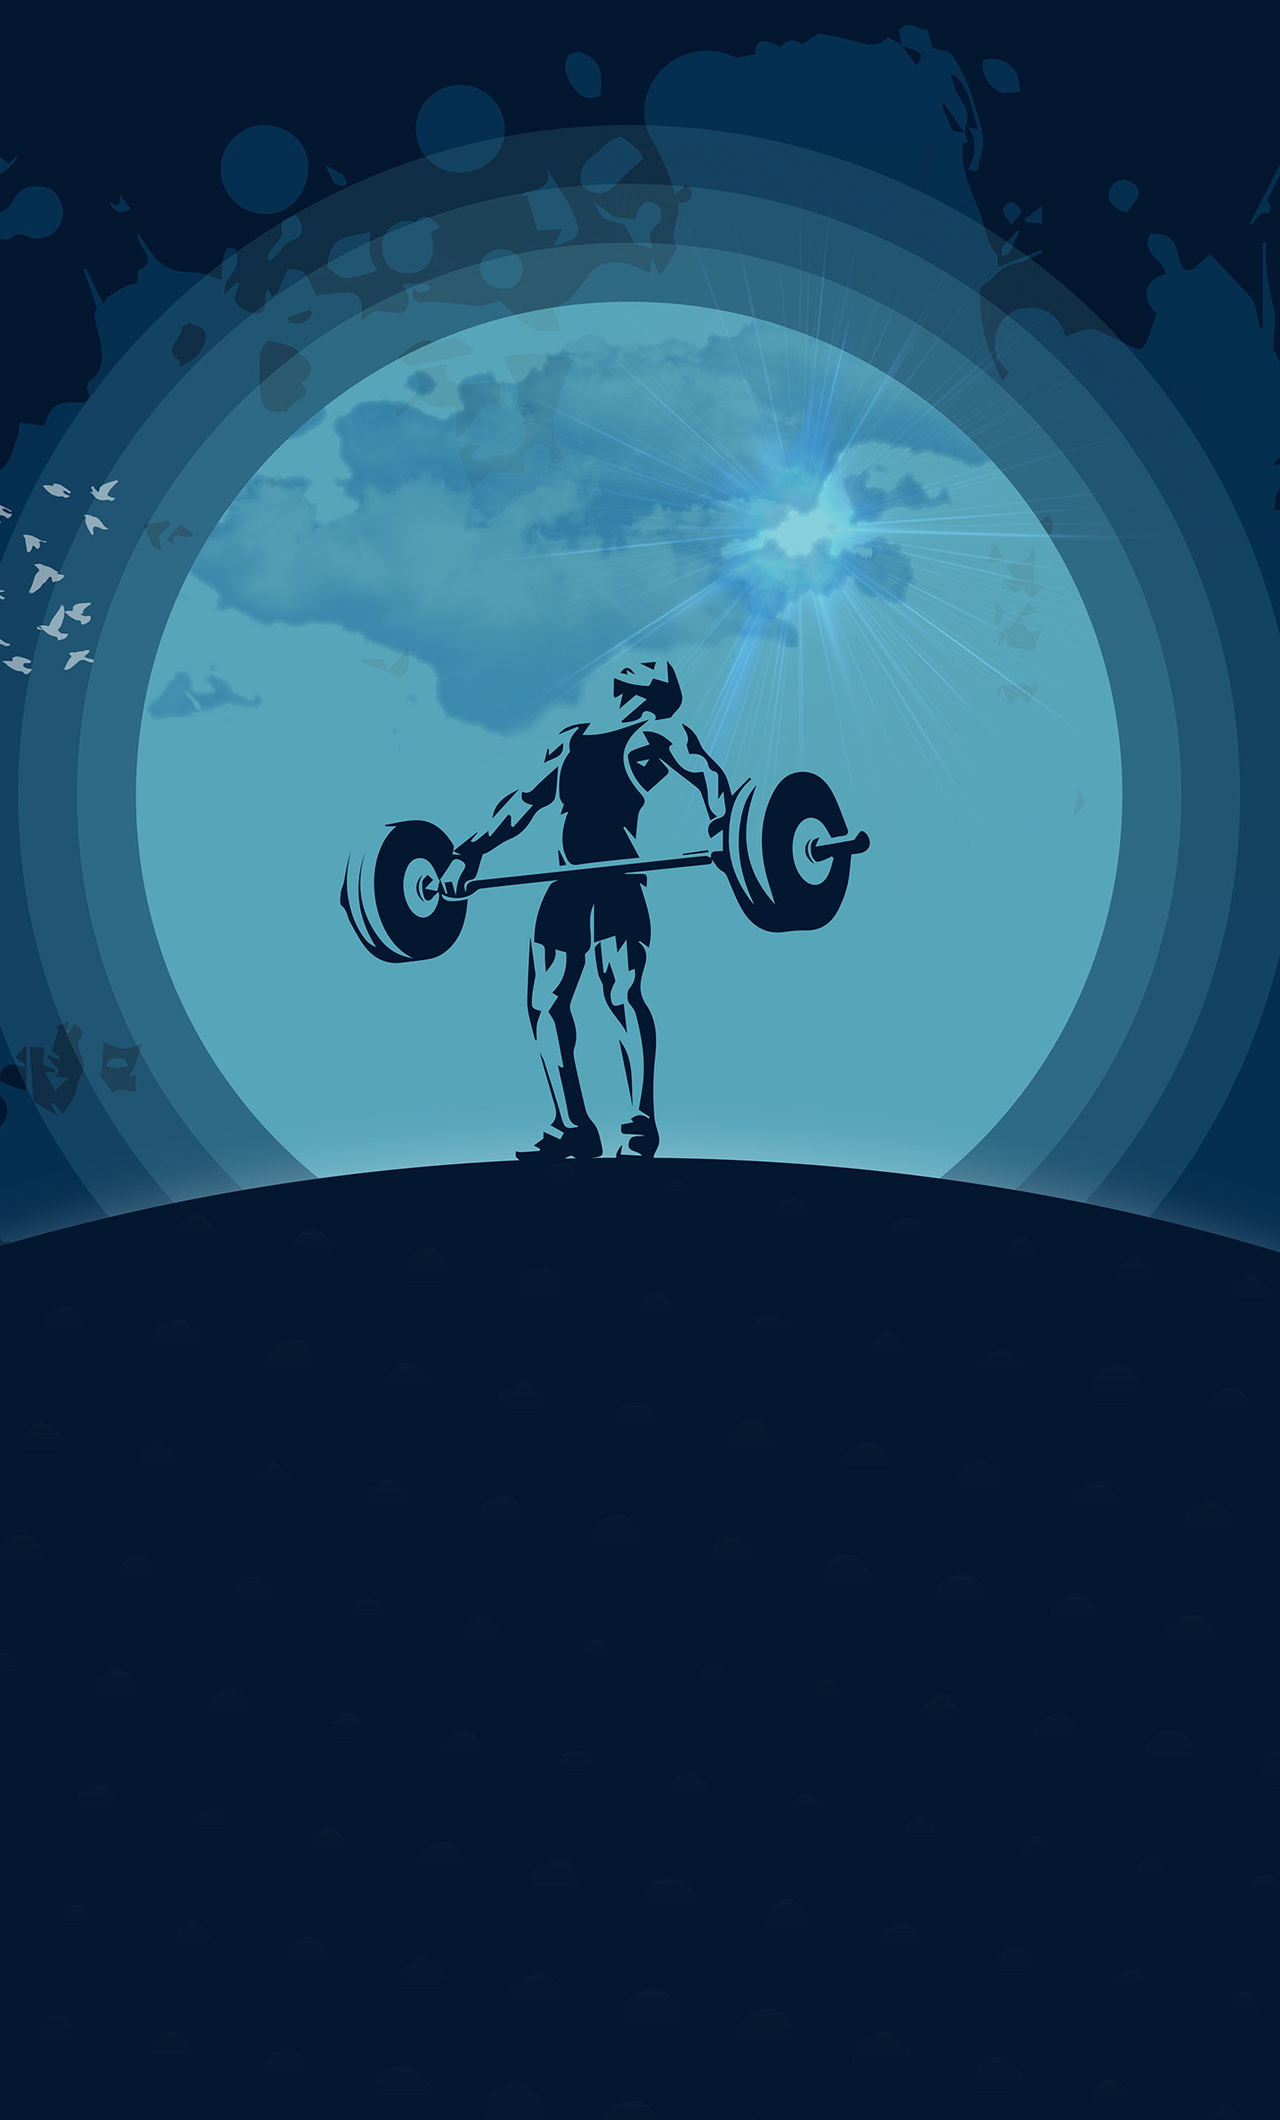 lifter-silhouette-moonlight-vector-illustration-1q.jpg